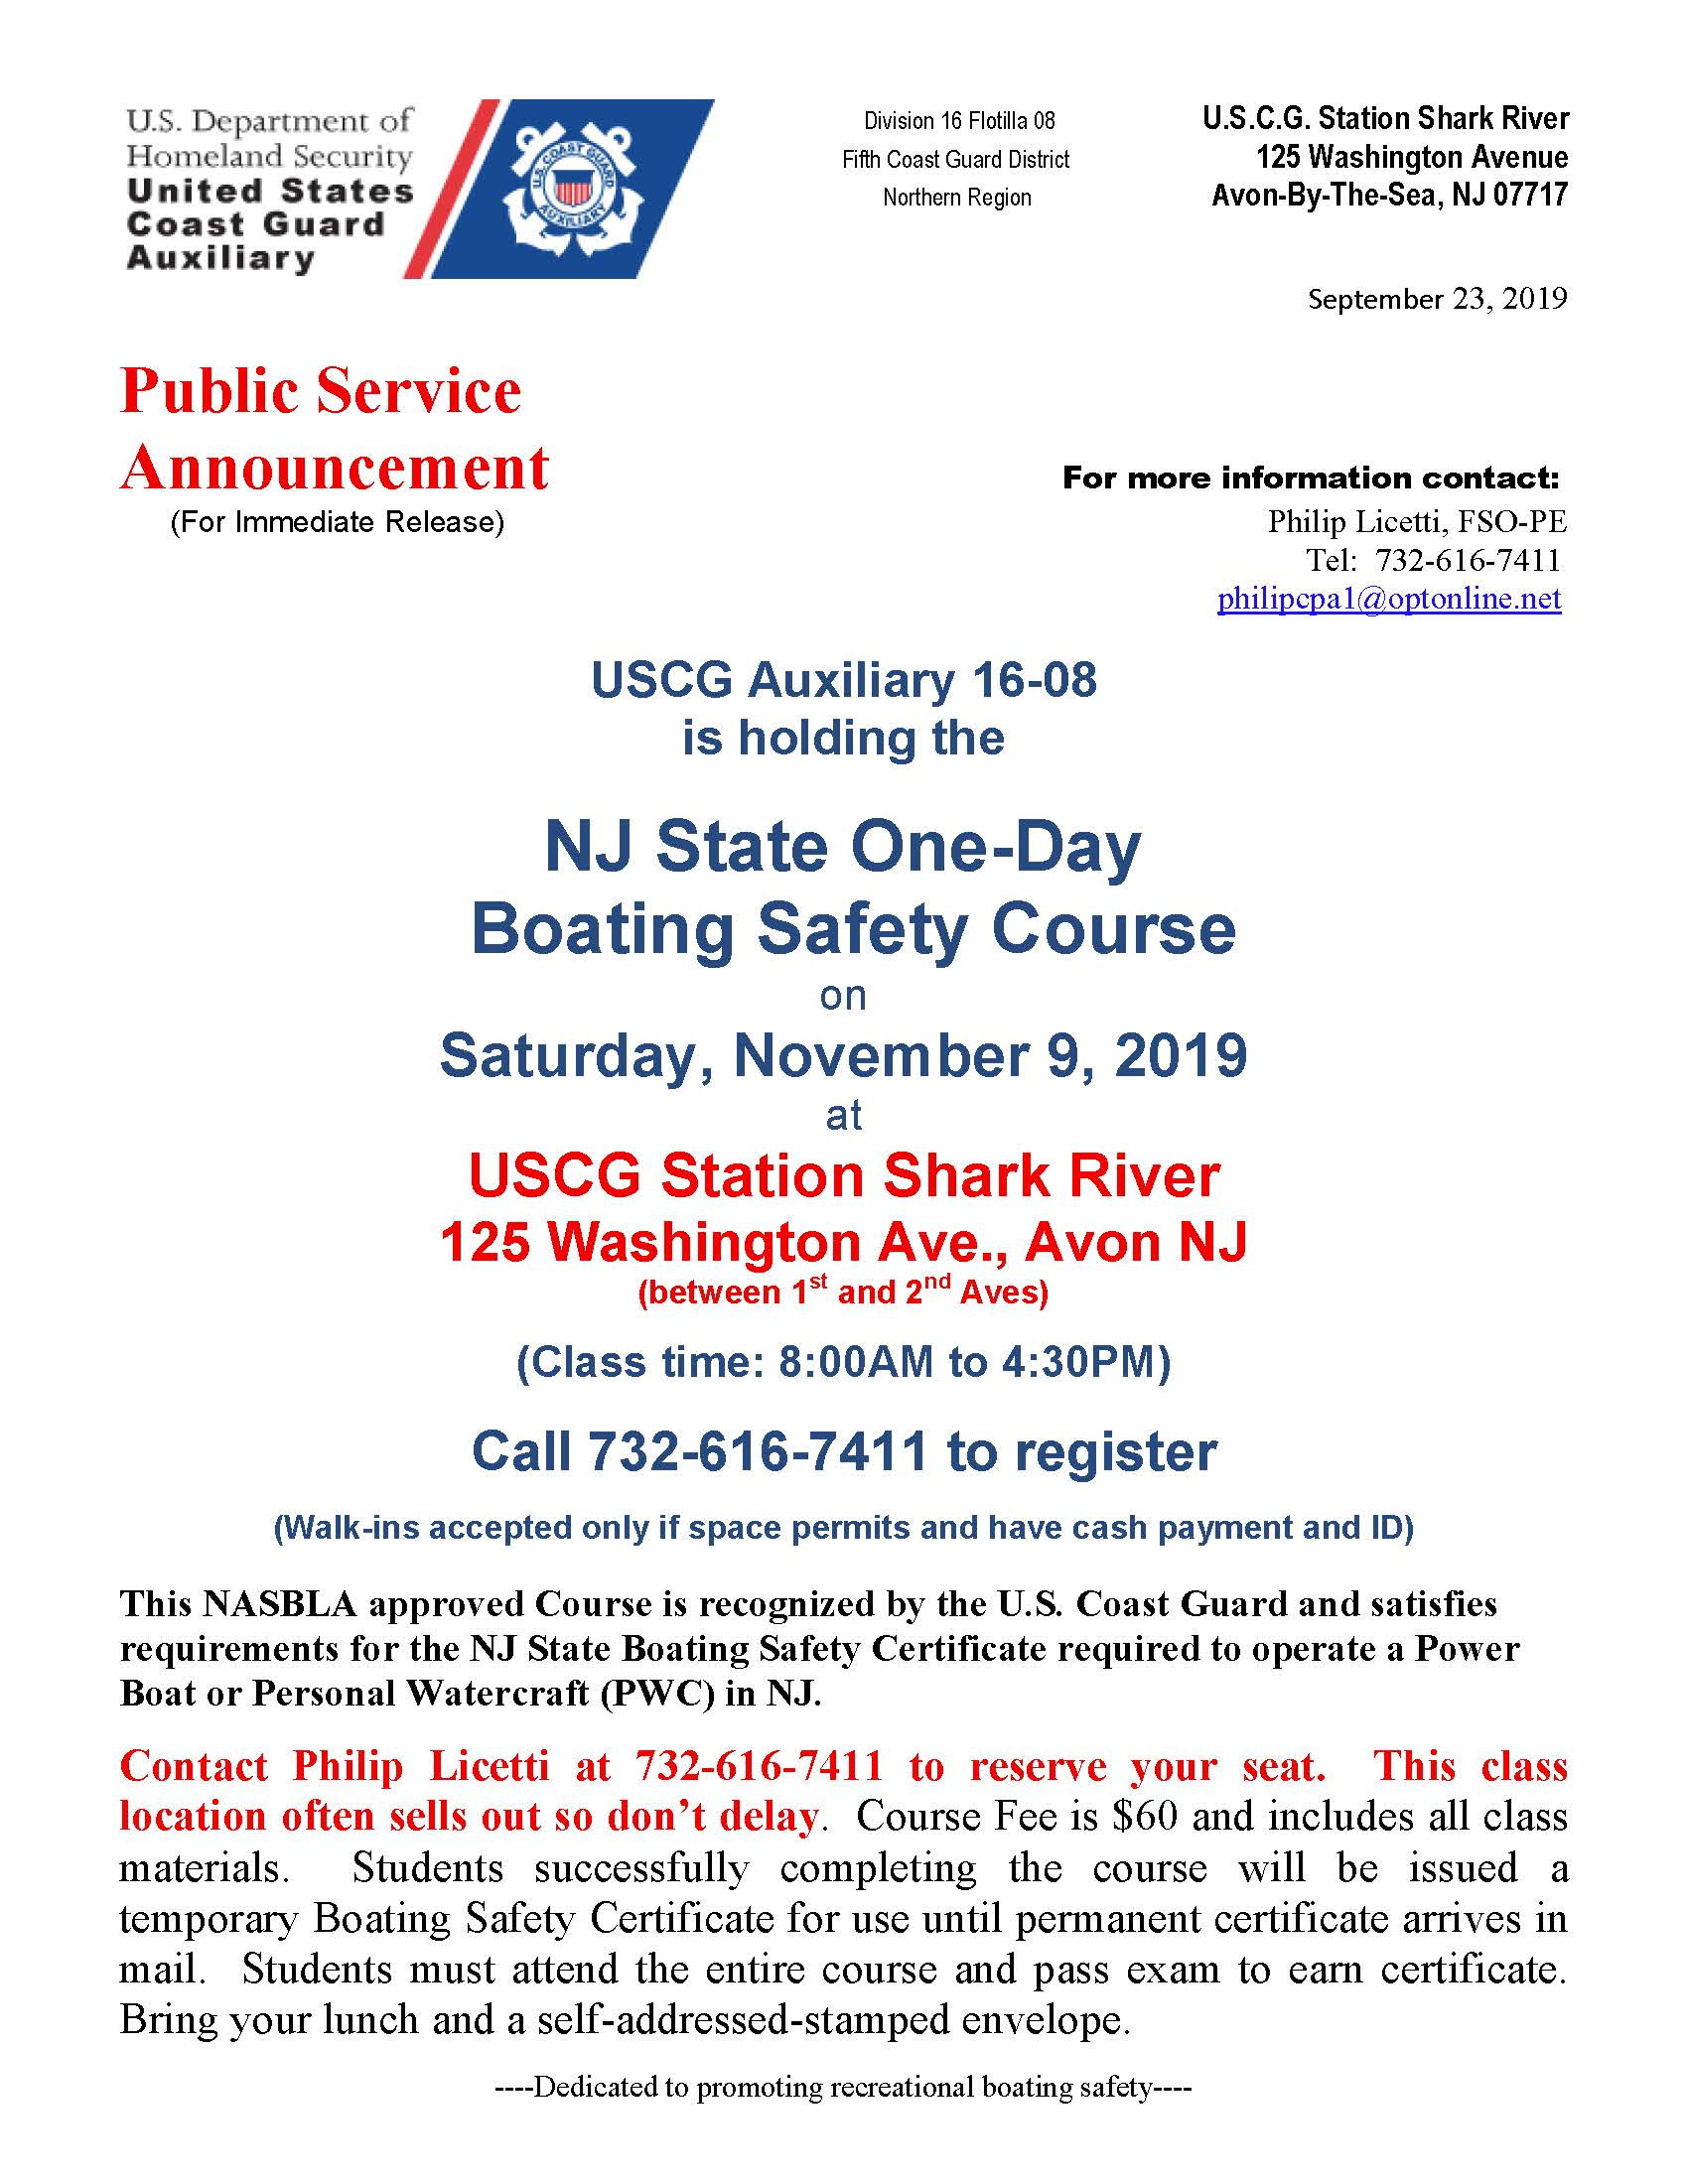 NJ Boating Safety Course 11.9.19